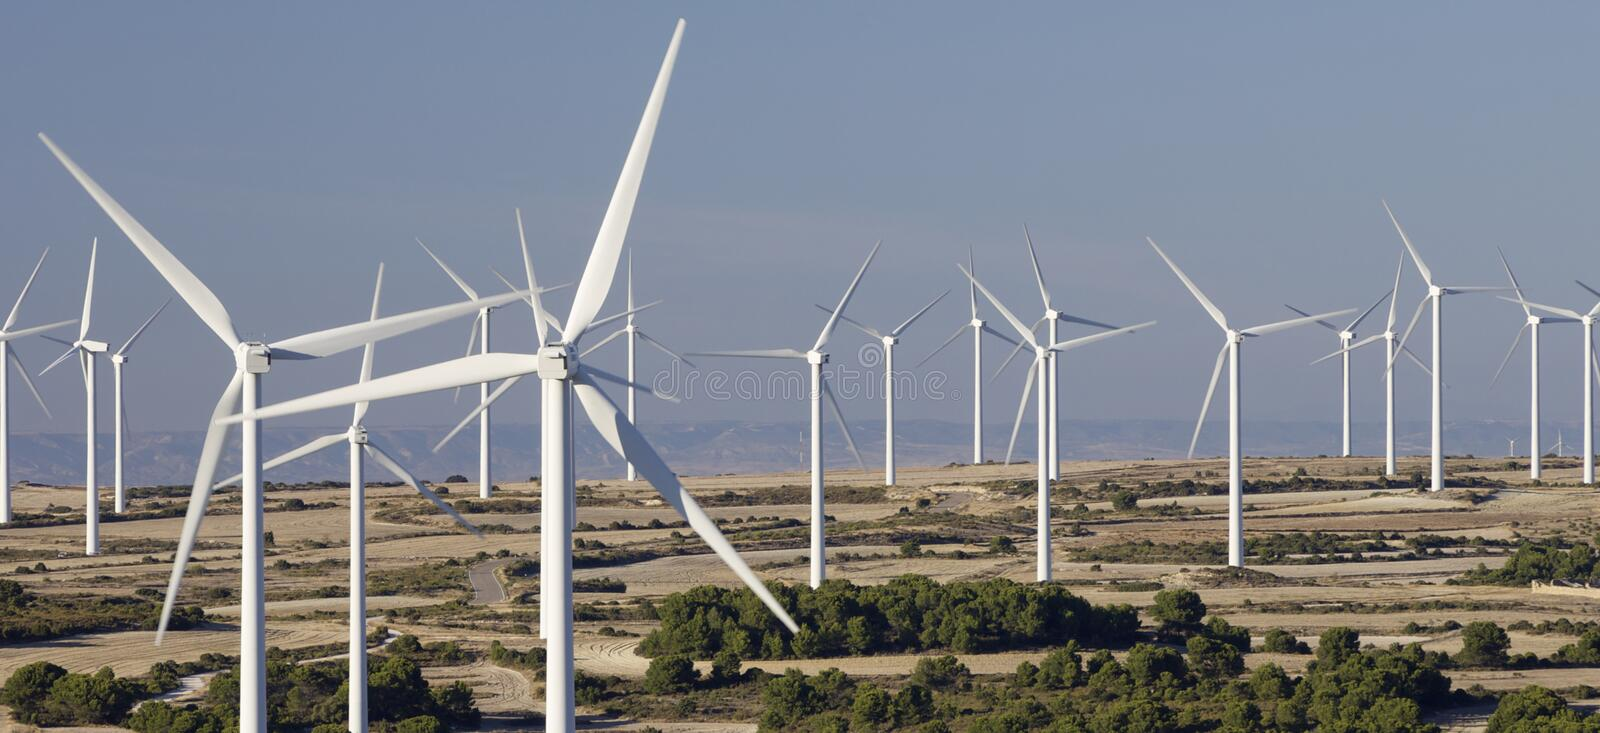 Download Windmills stock image. Image of generation, production - 16291163